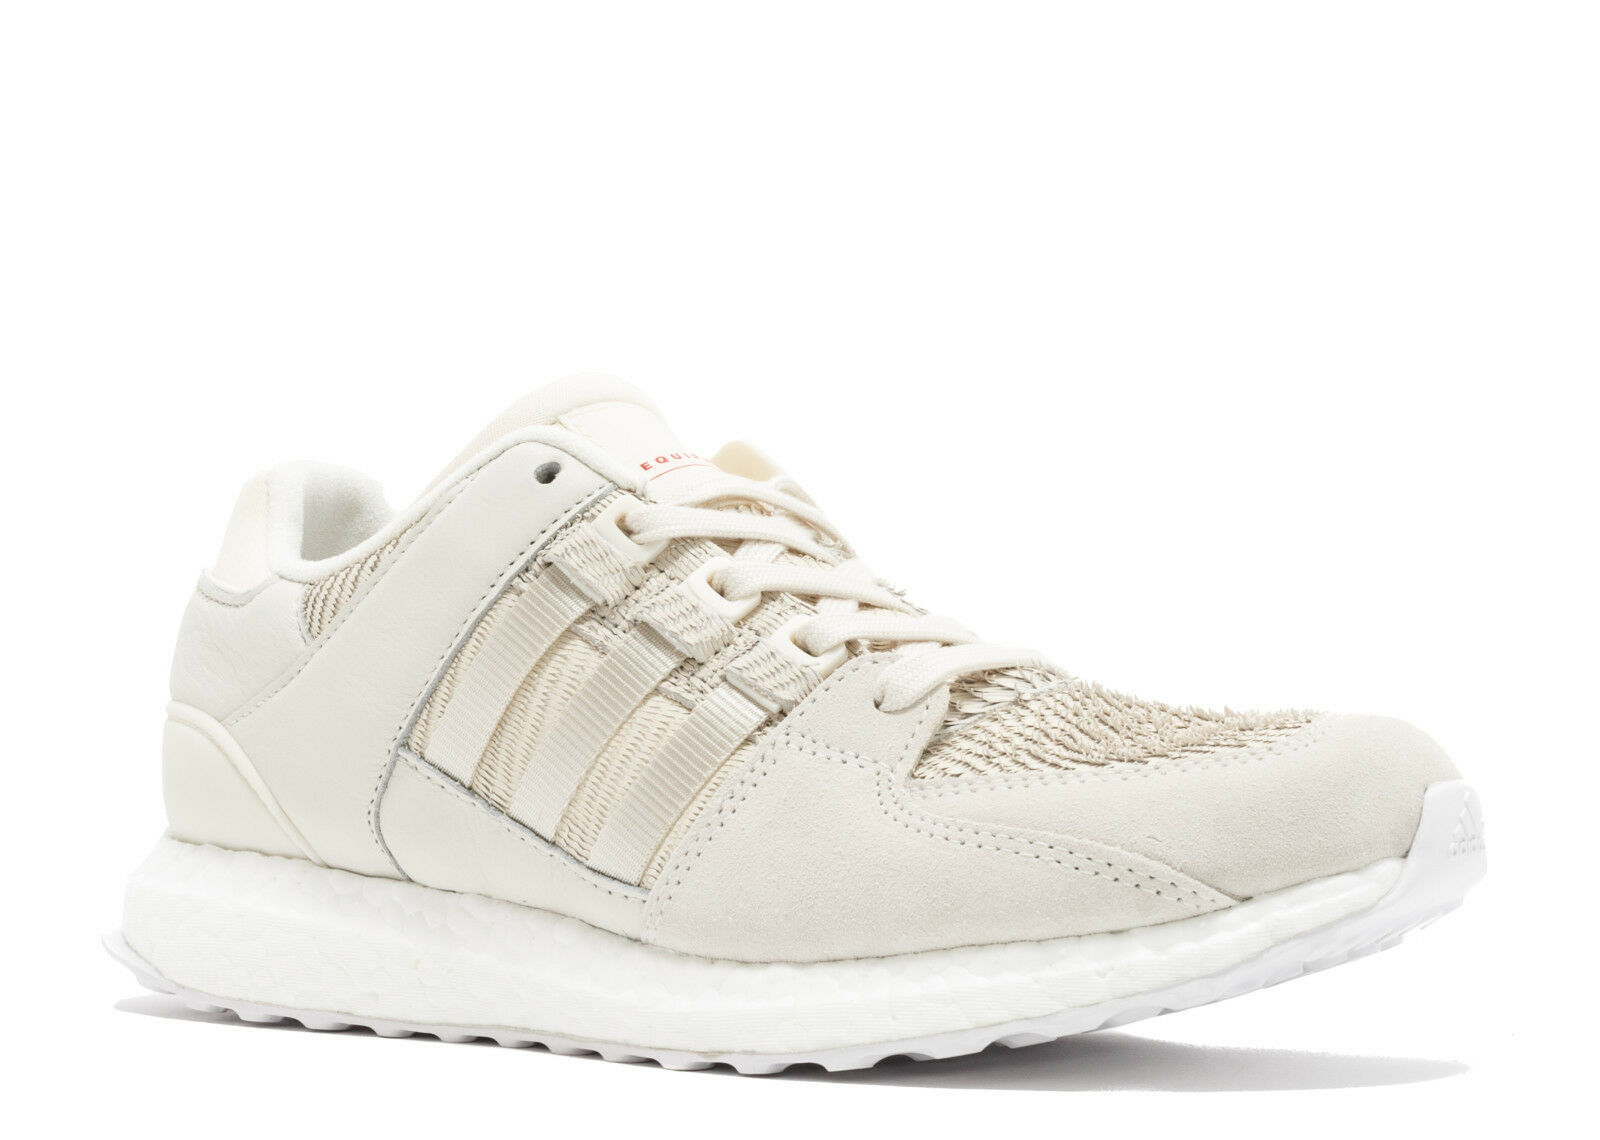 Eqt Support Ultra Cny  Year Of le coq  - Ba7777-Taille 10